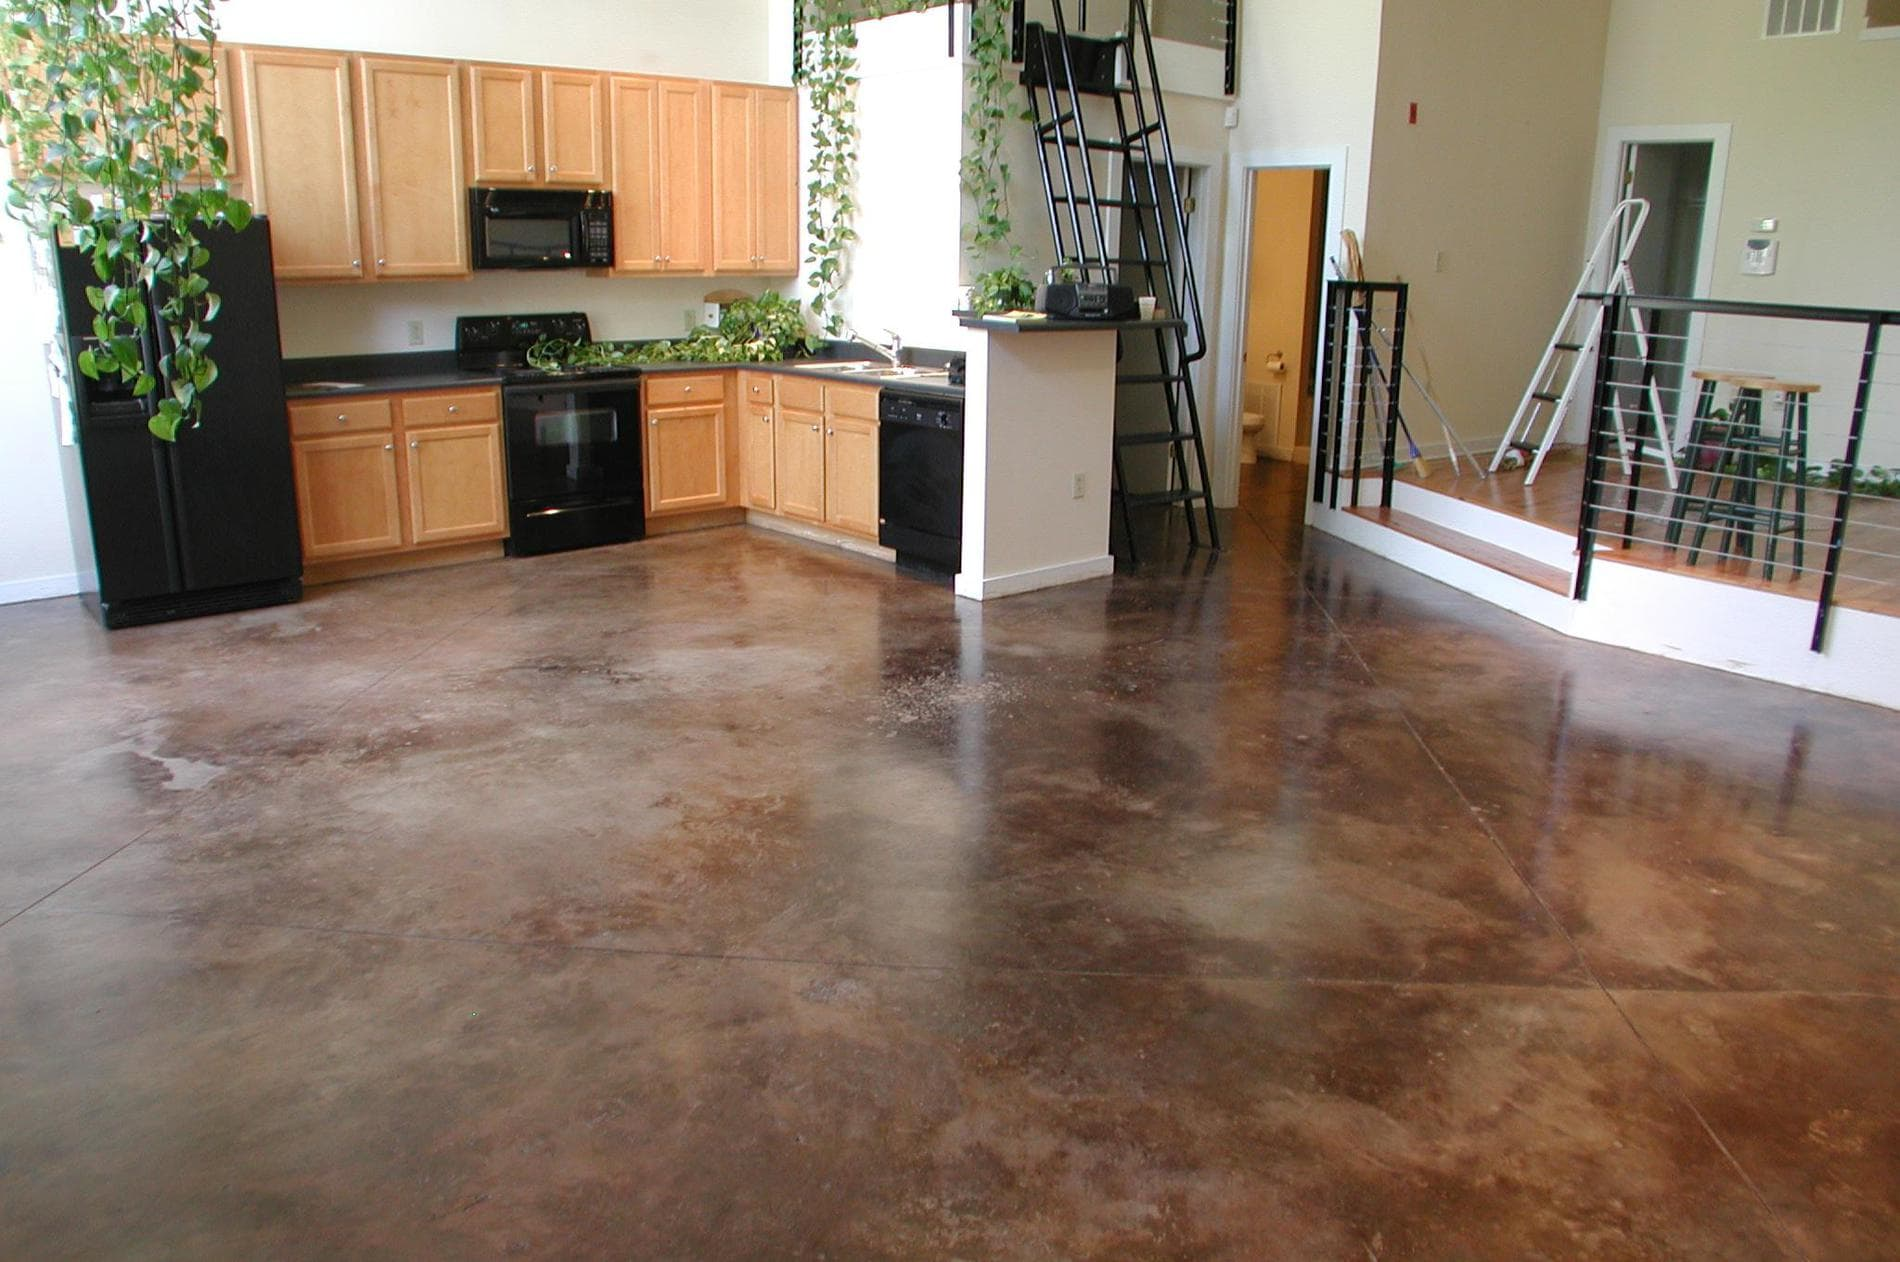 How to prepare correctly for the successful installation of concrete floor covering